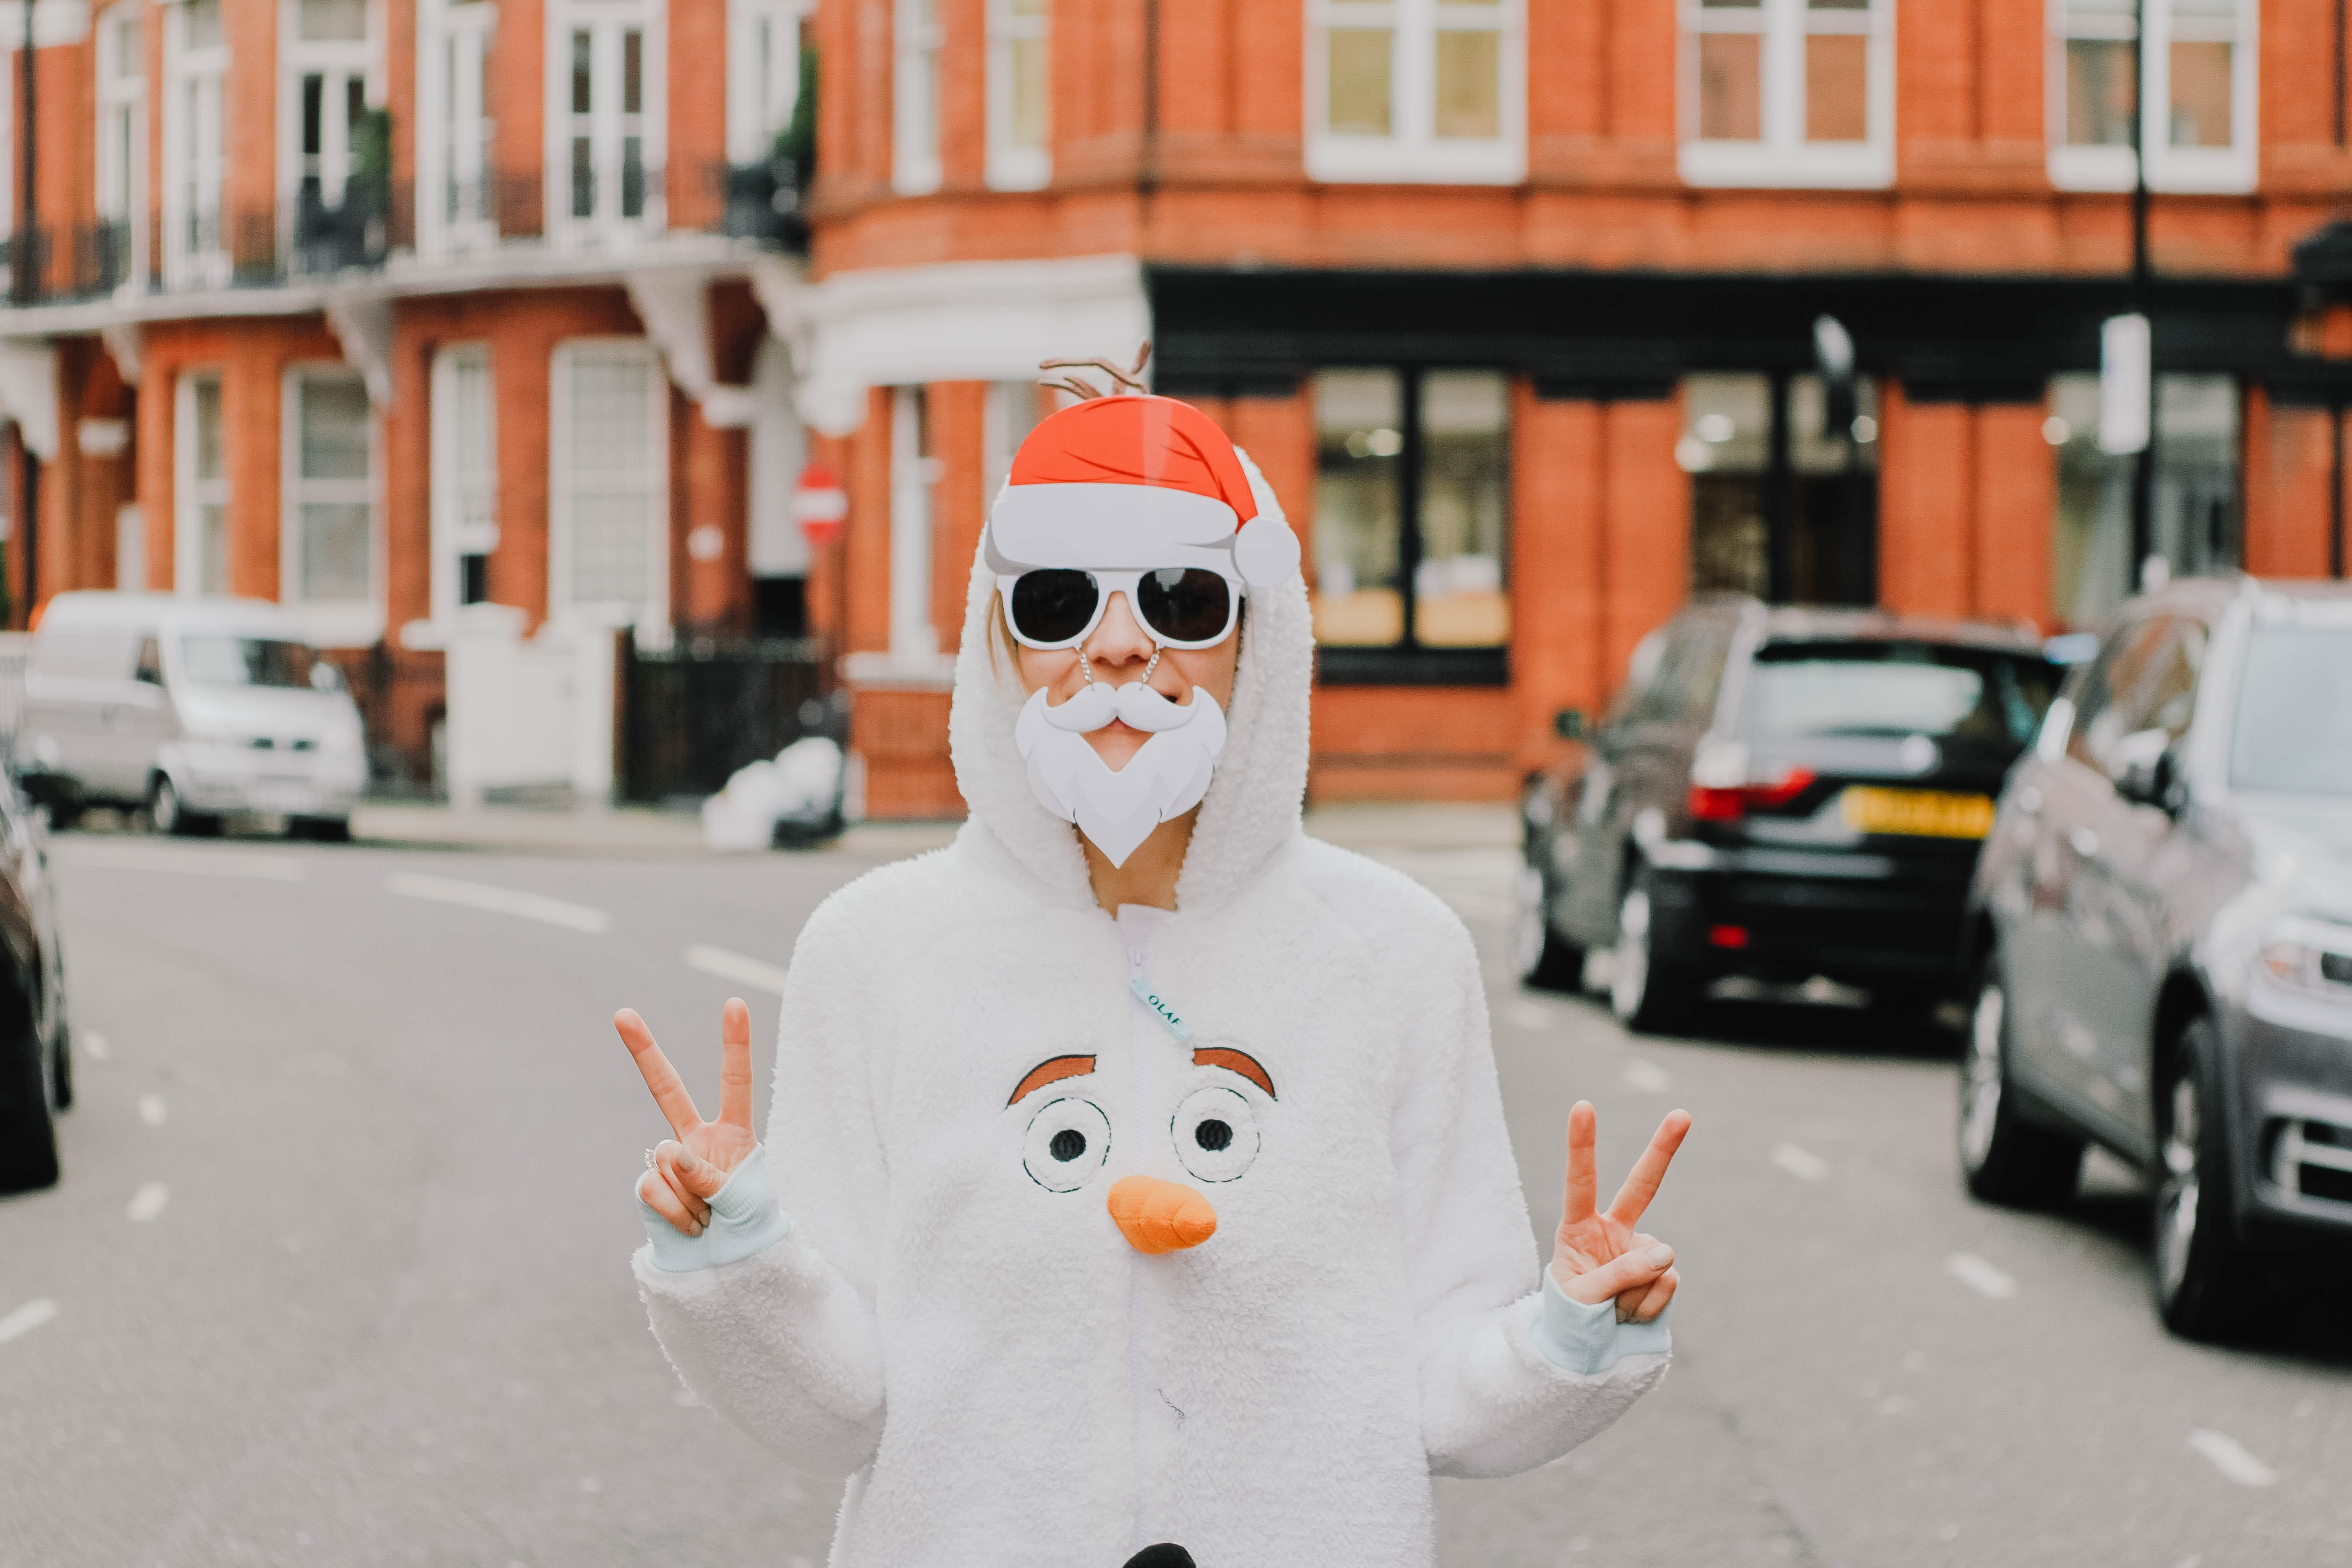 A person wearing a fake white beard and Santa hat, with a jumper suit that features a snowman's face on the chest.